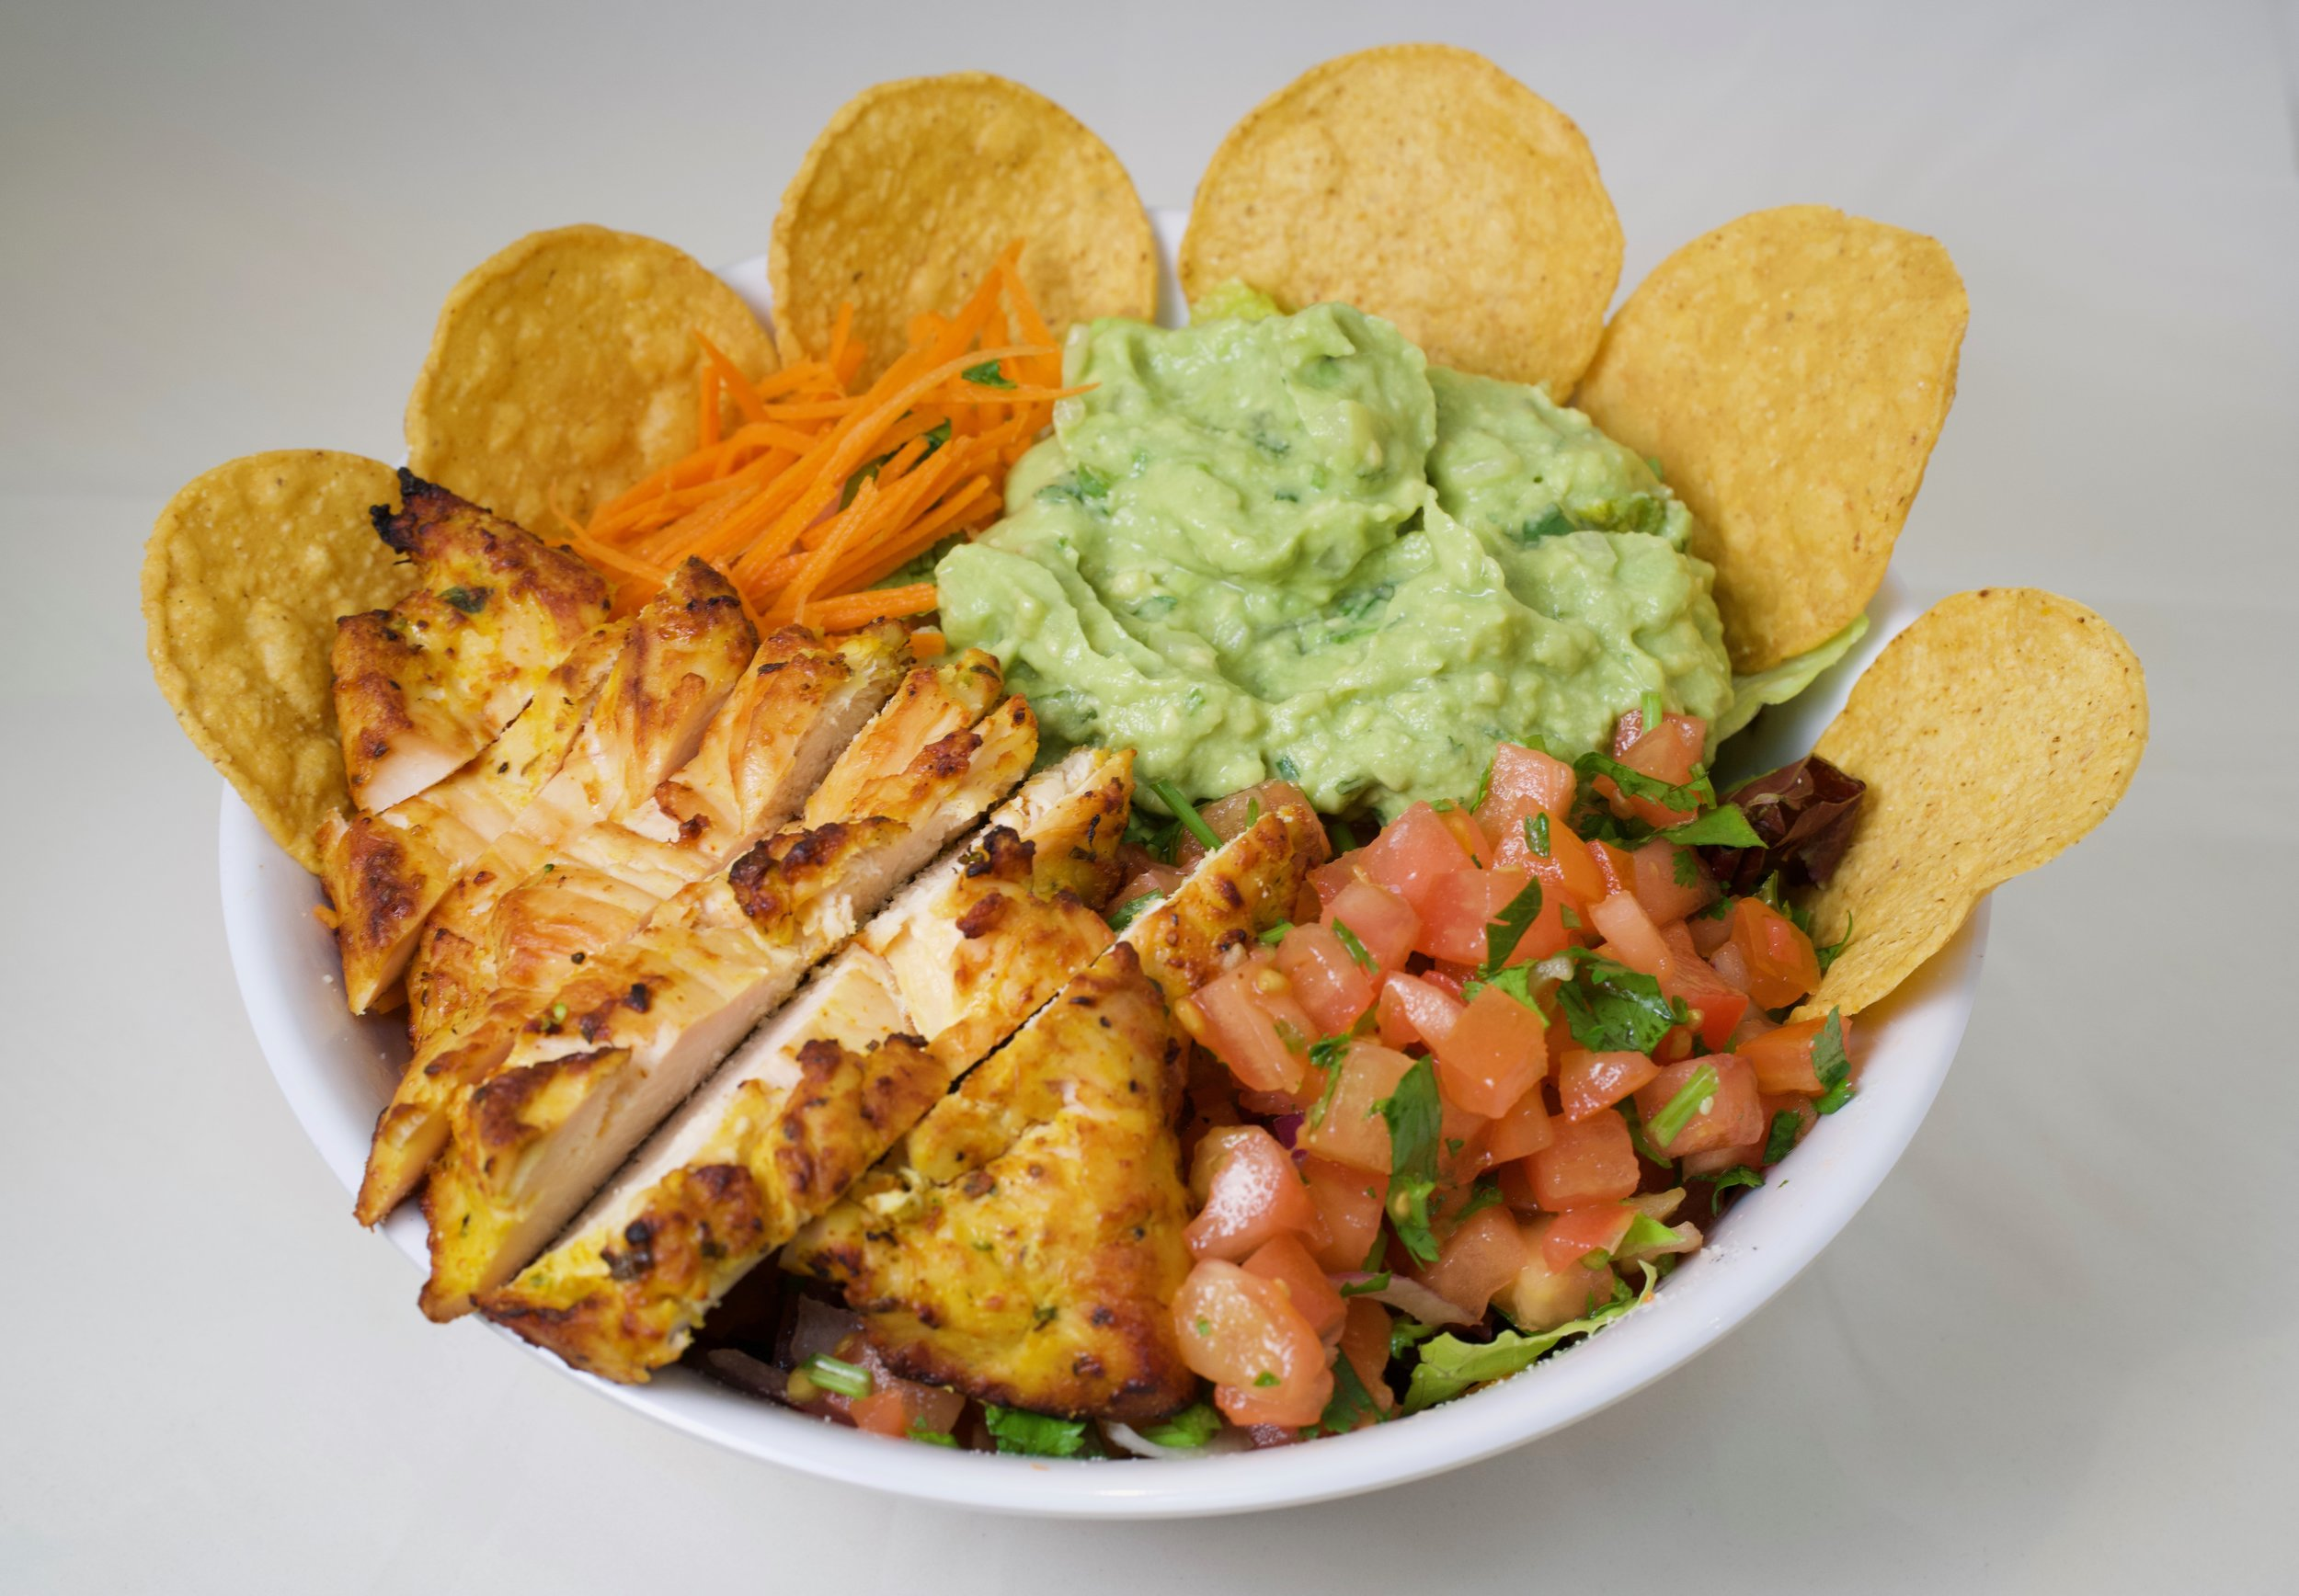 107. Guacamole Crunch Chicken Salad